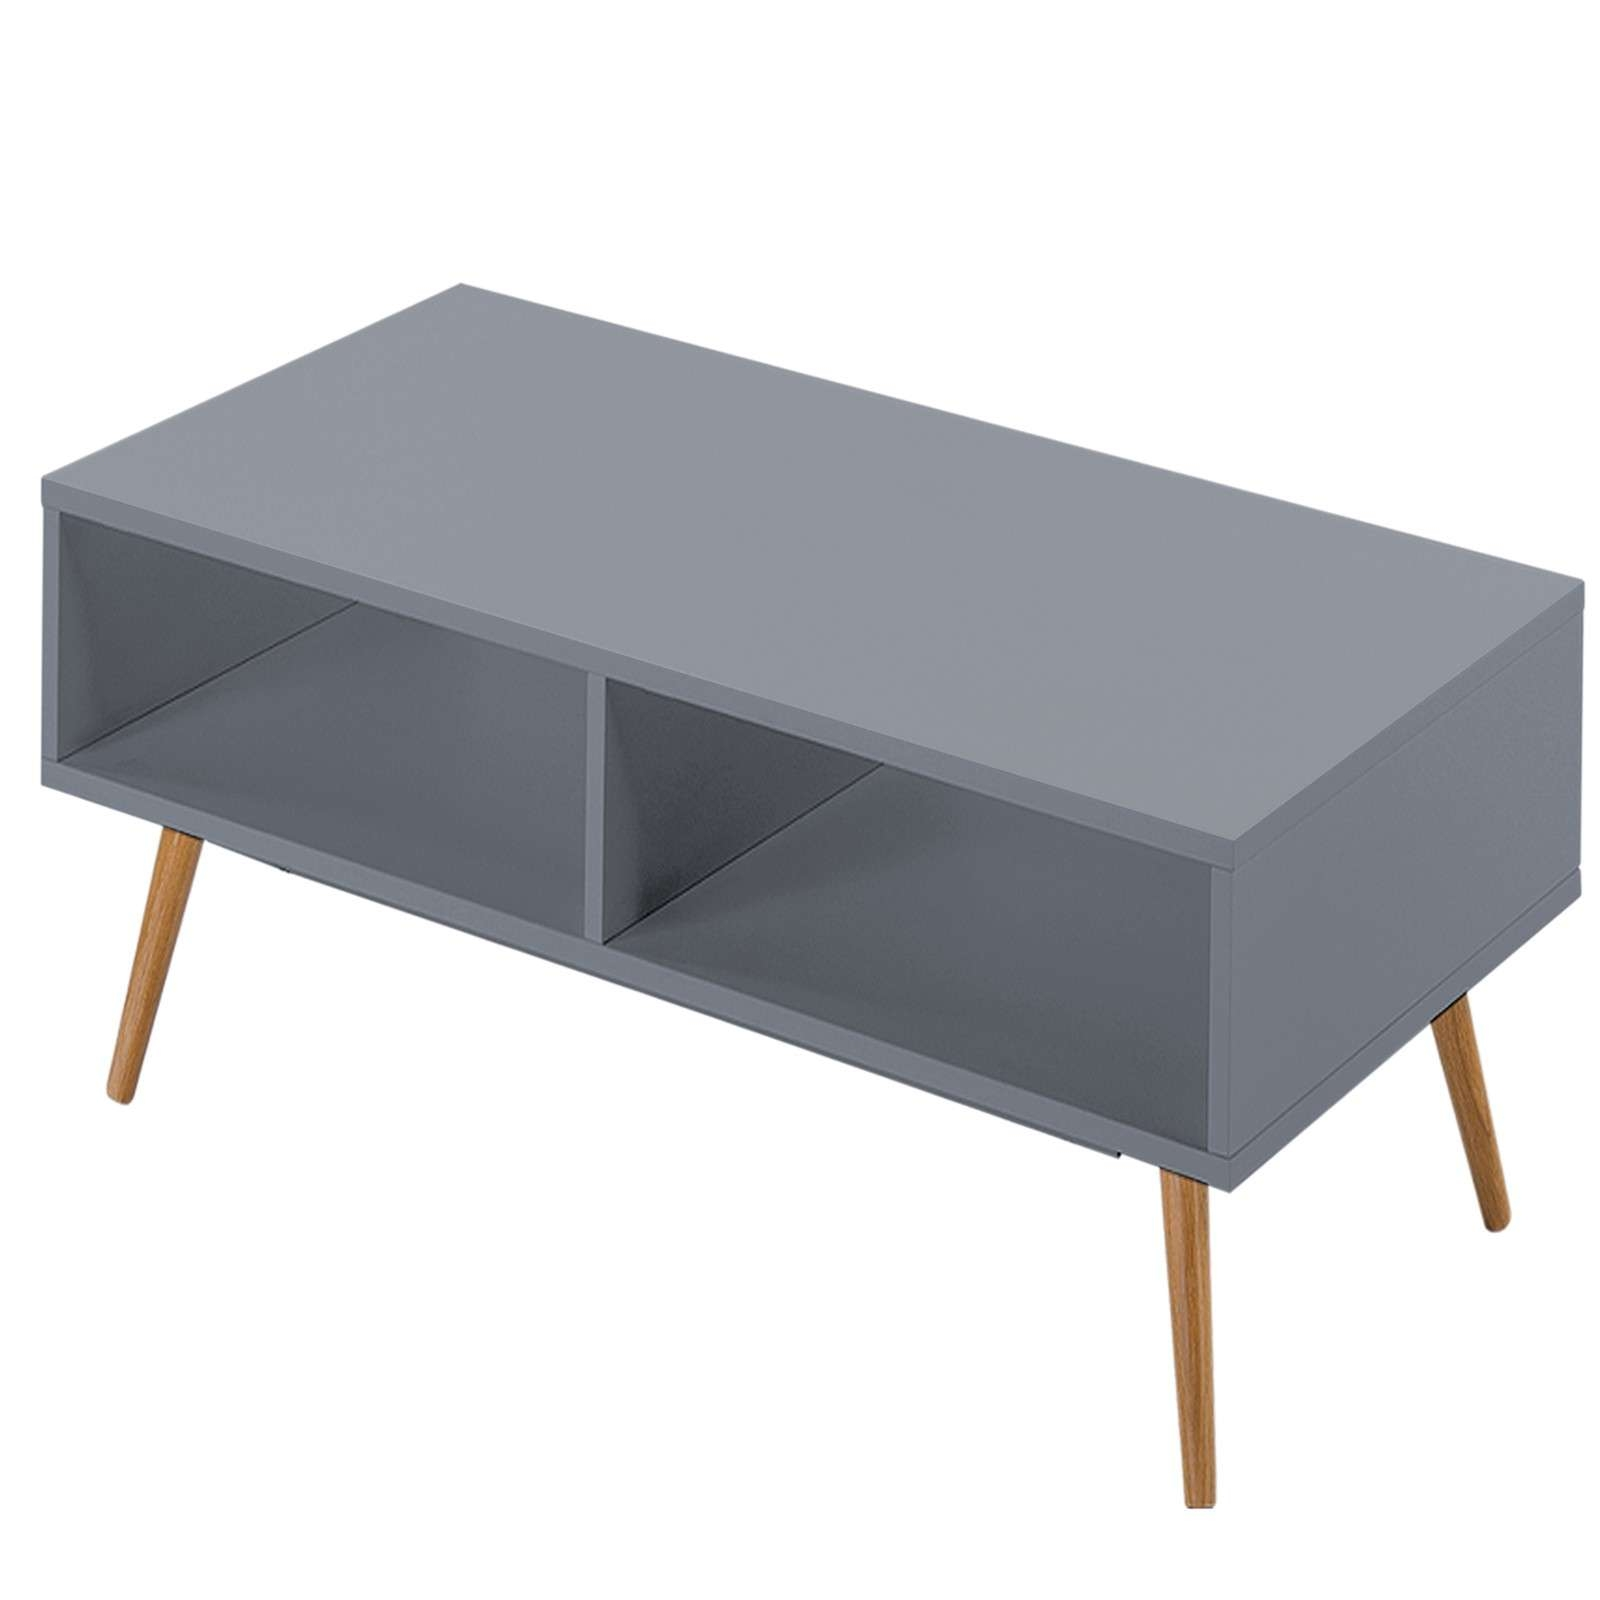 Scandinavian Modern Tv Stand From Abreo Abreo Home Furniture For Scandinavian Tv Stands (View 7 of 15)